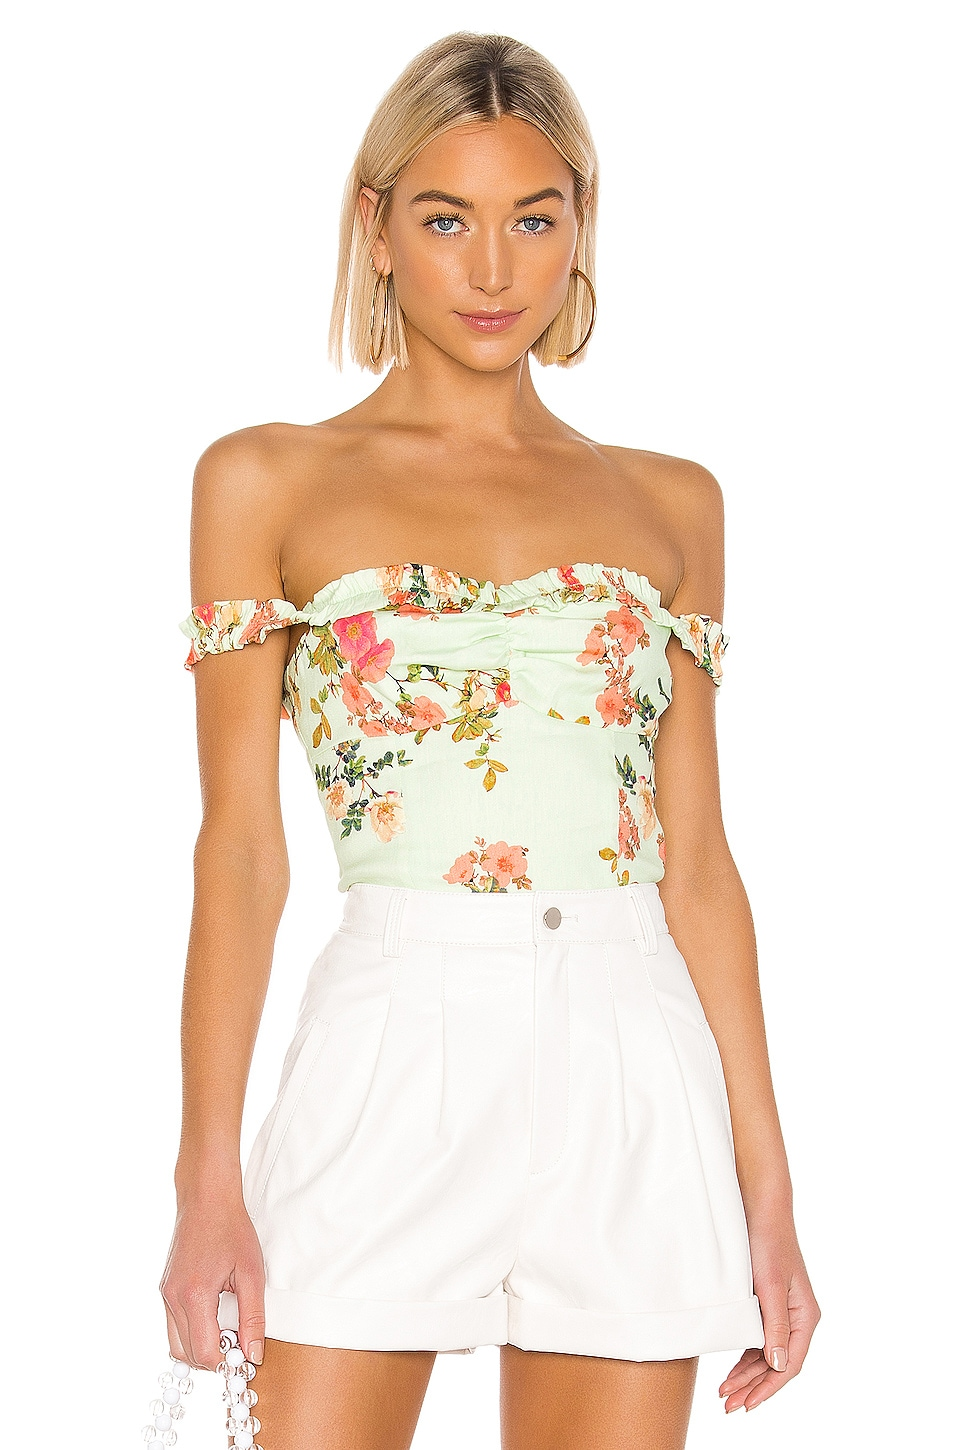 Lovers + Friends Laney Top in Sage Floral